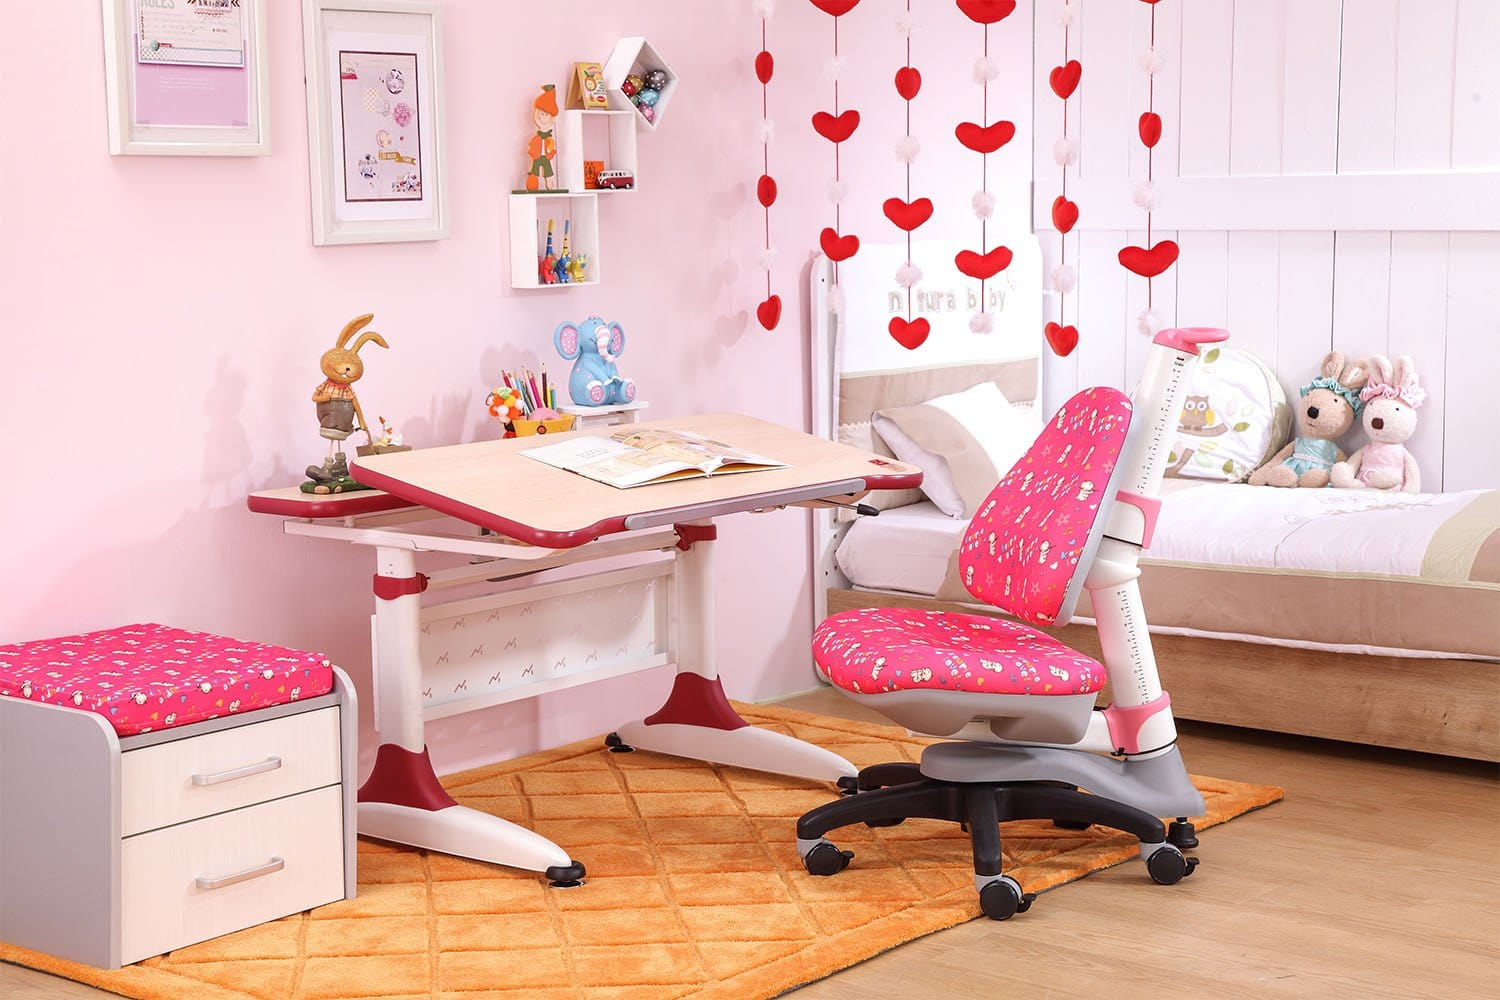 Palette Desk + Cupid Chair